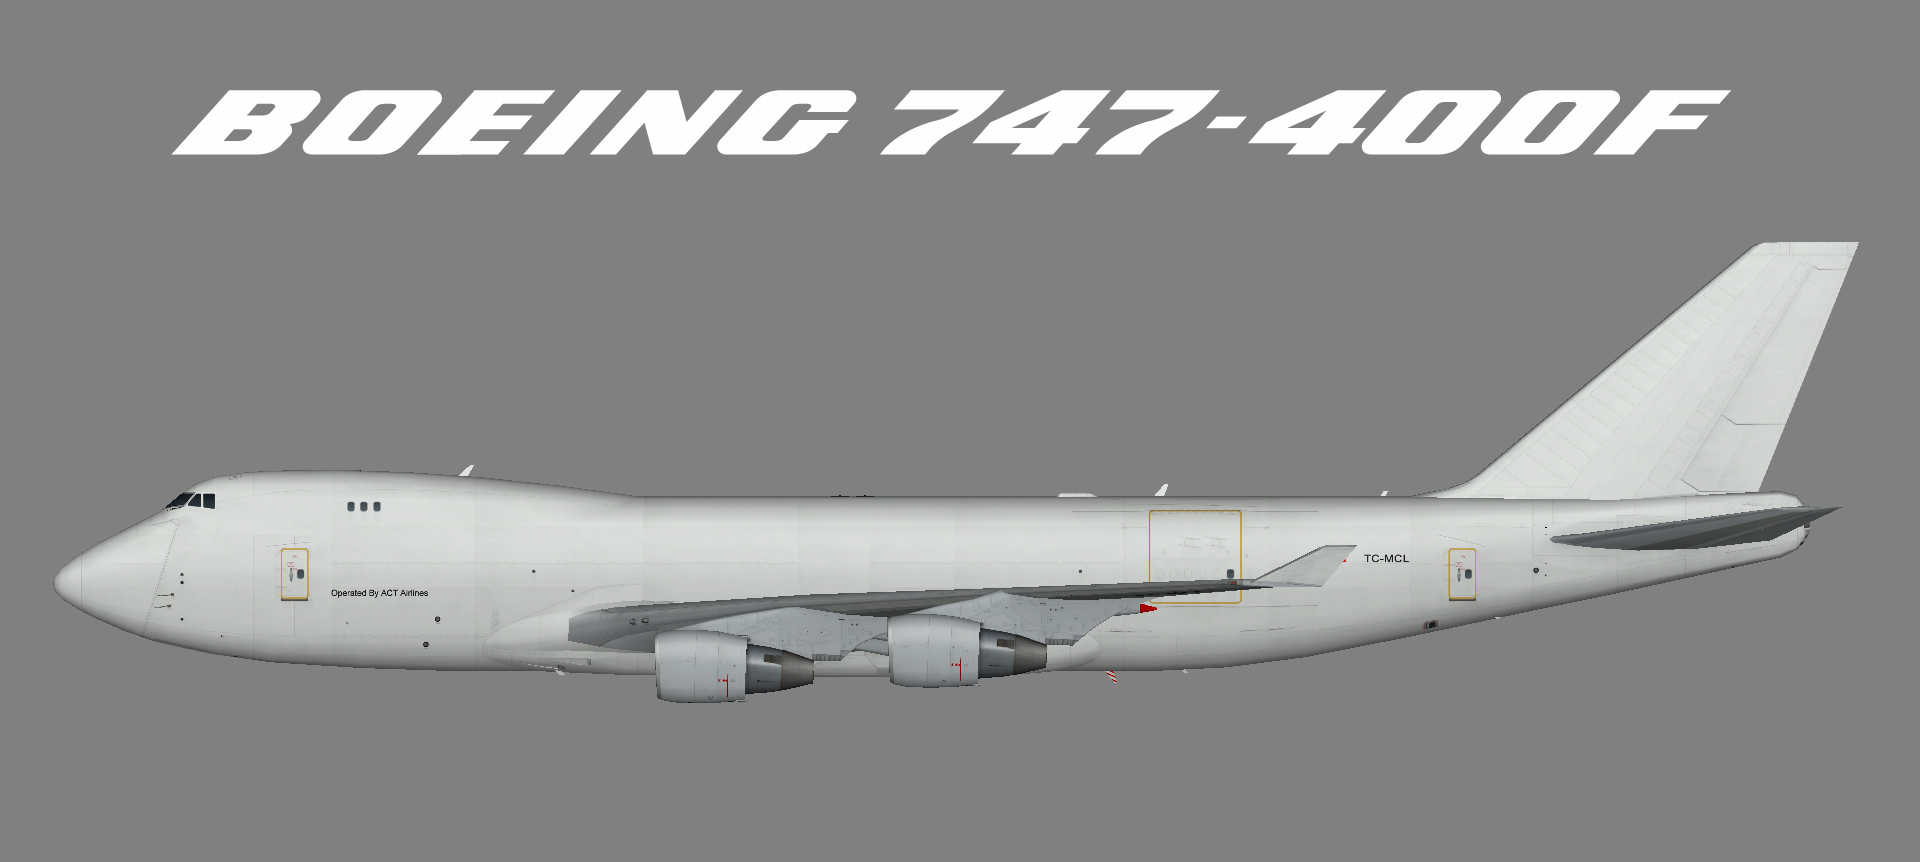 ACT Airlines 747-400F